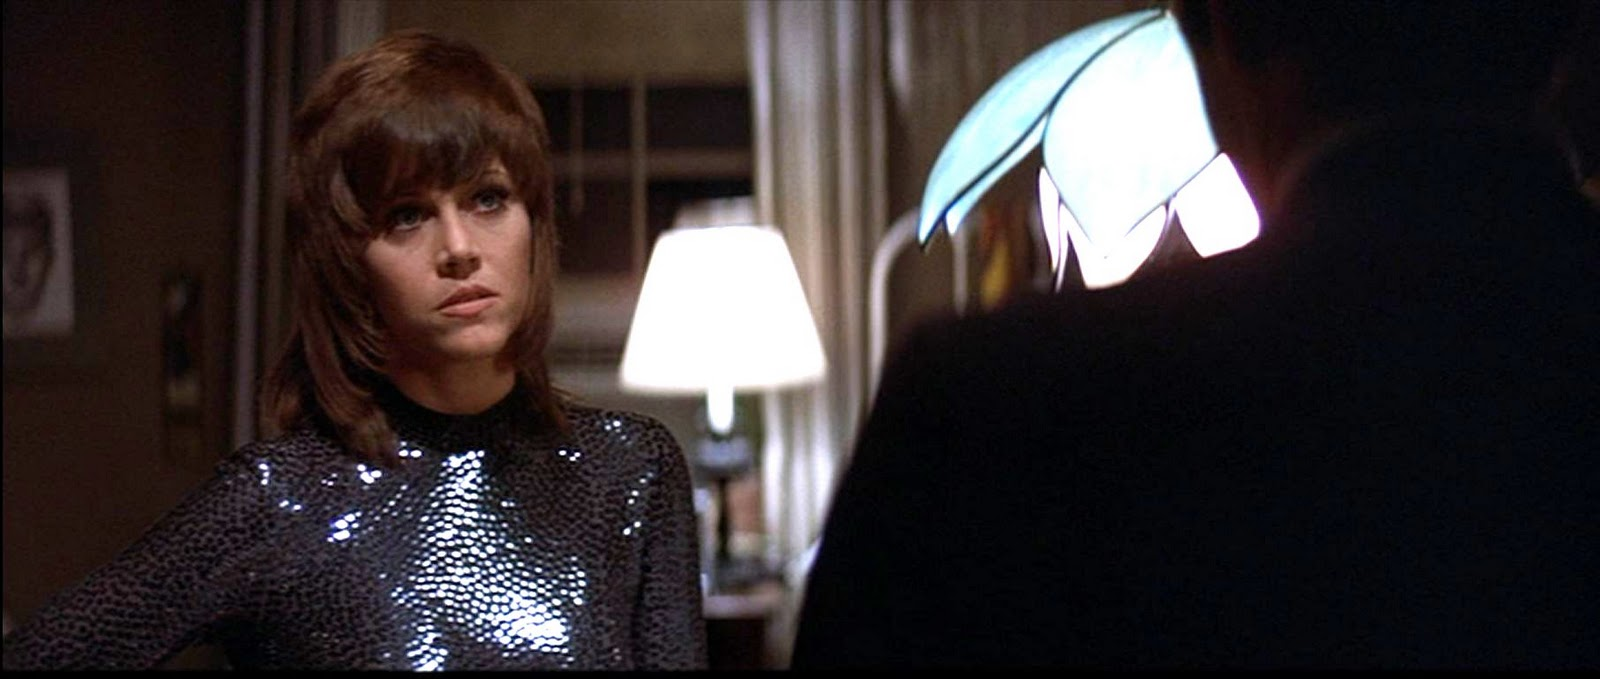 Ho' hum: Jane Fonda as Bree Daniels, the Haughty Hooker.